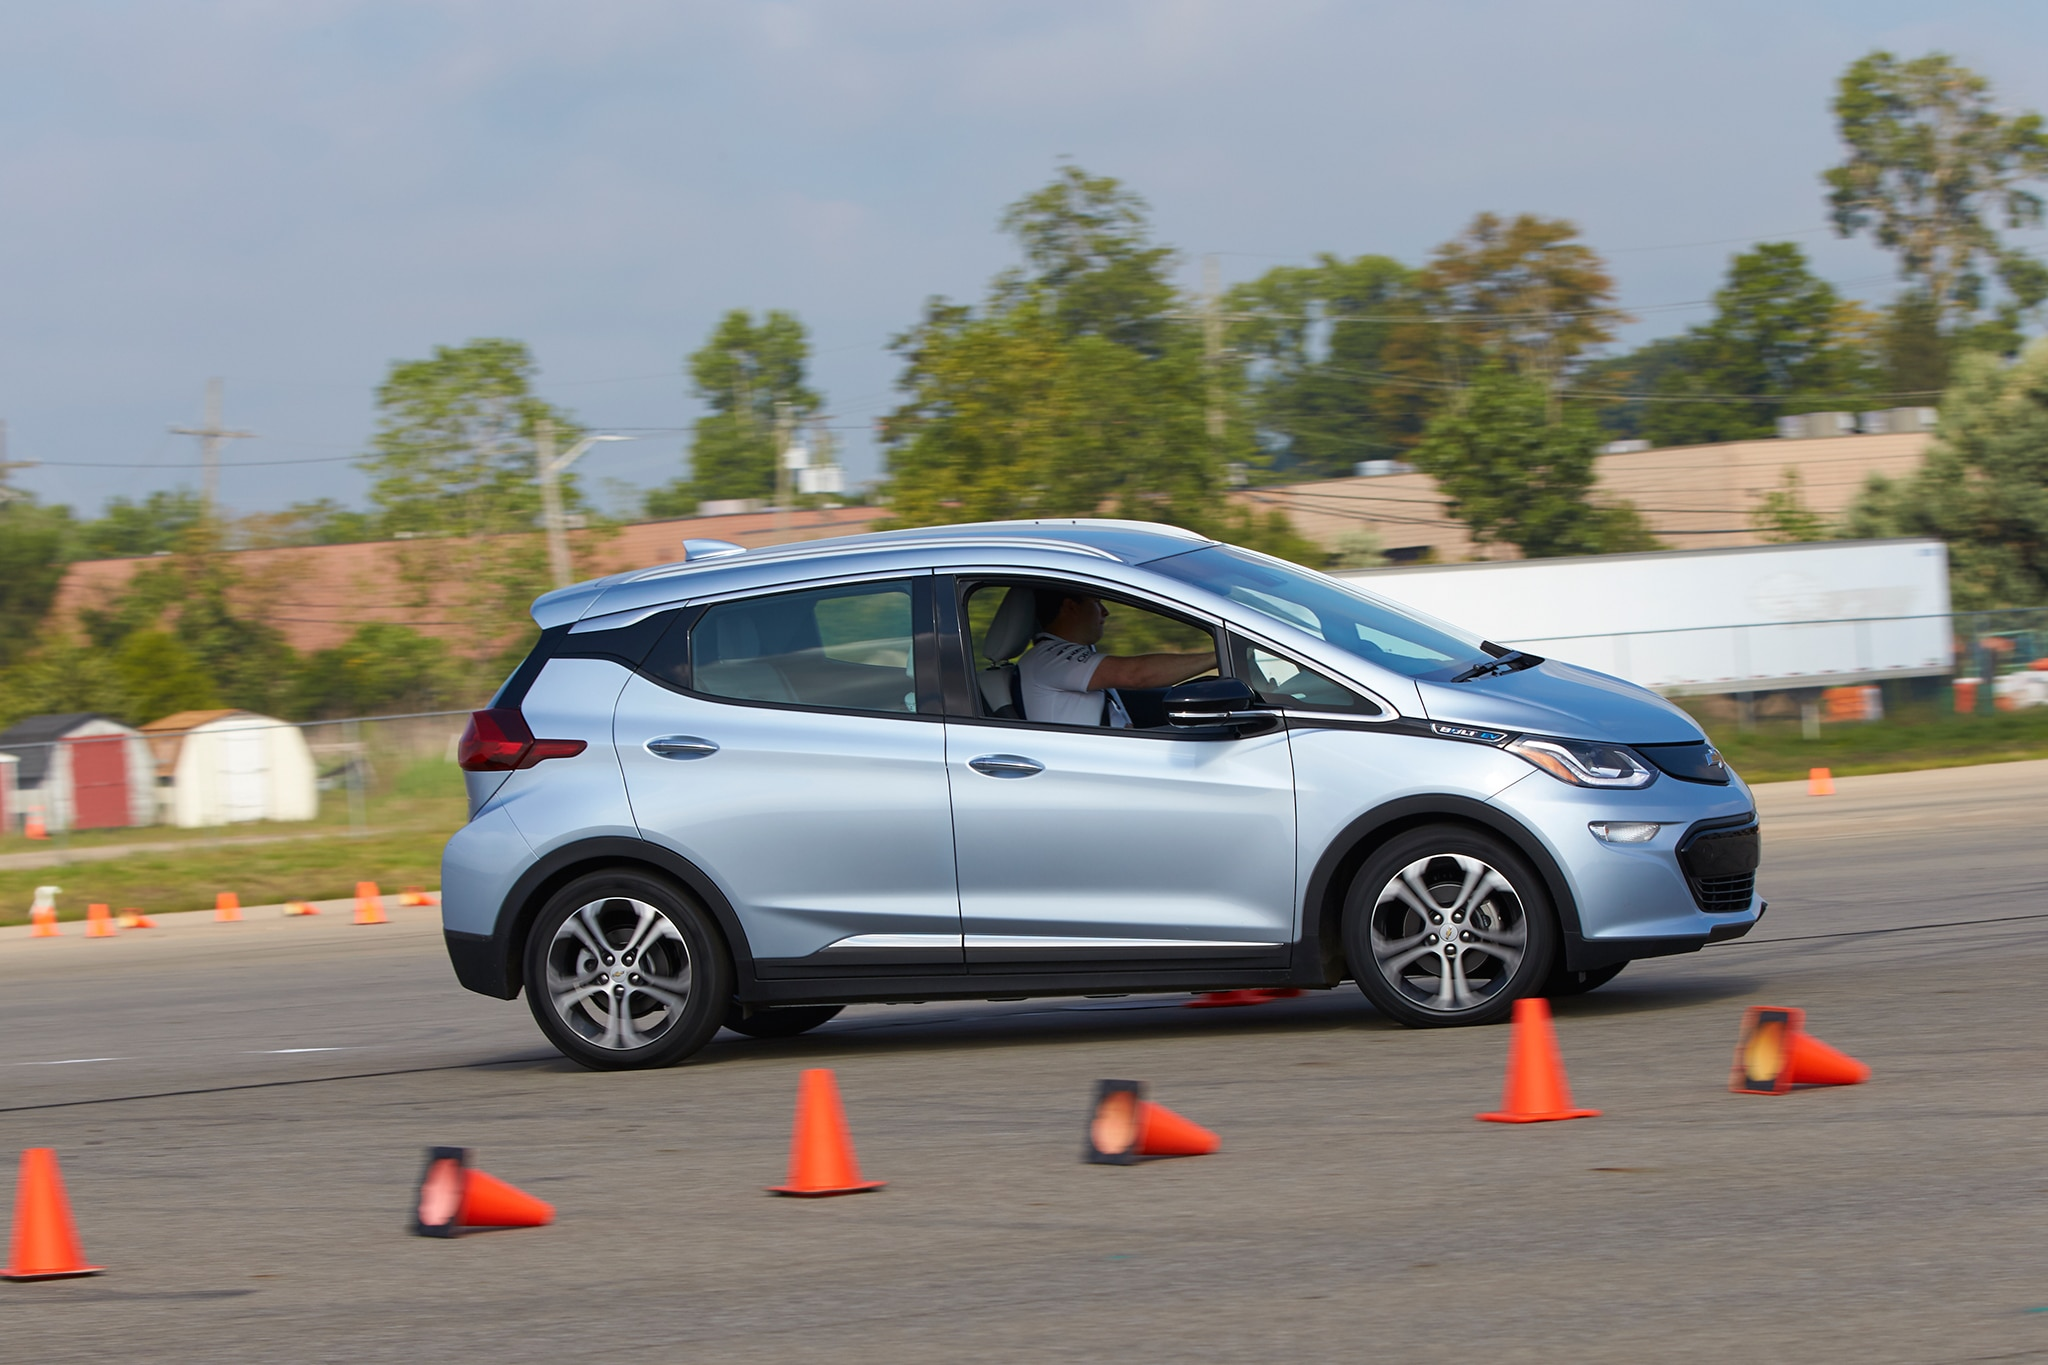 2017 Chevrolet Bolt EV Side Profile In Motion 06